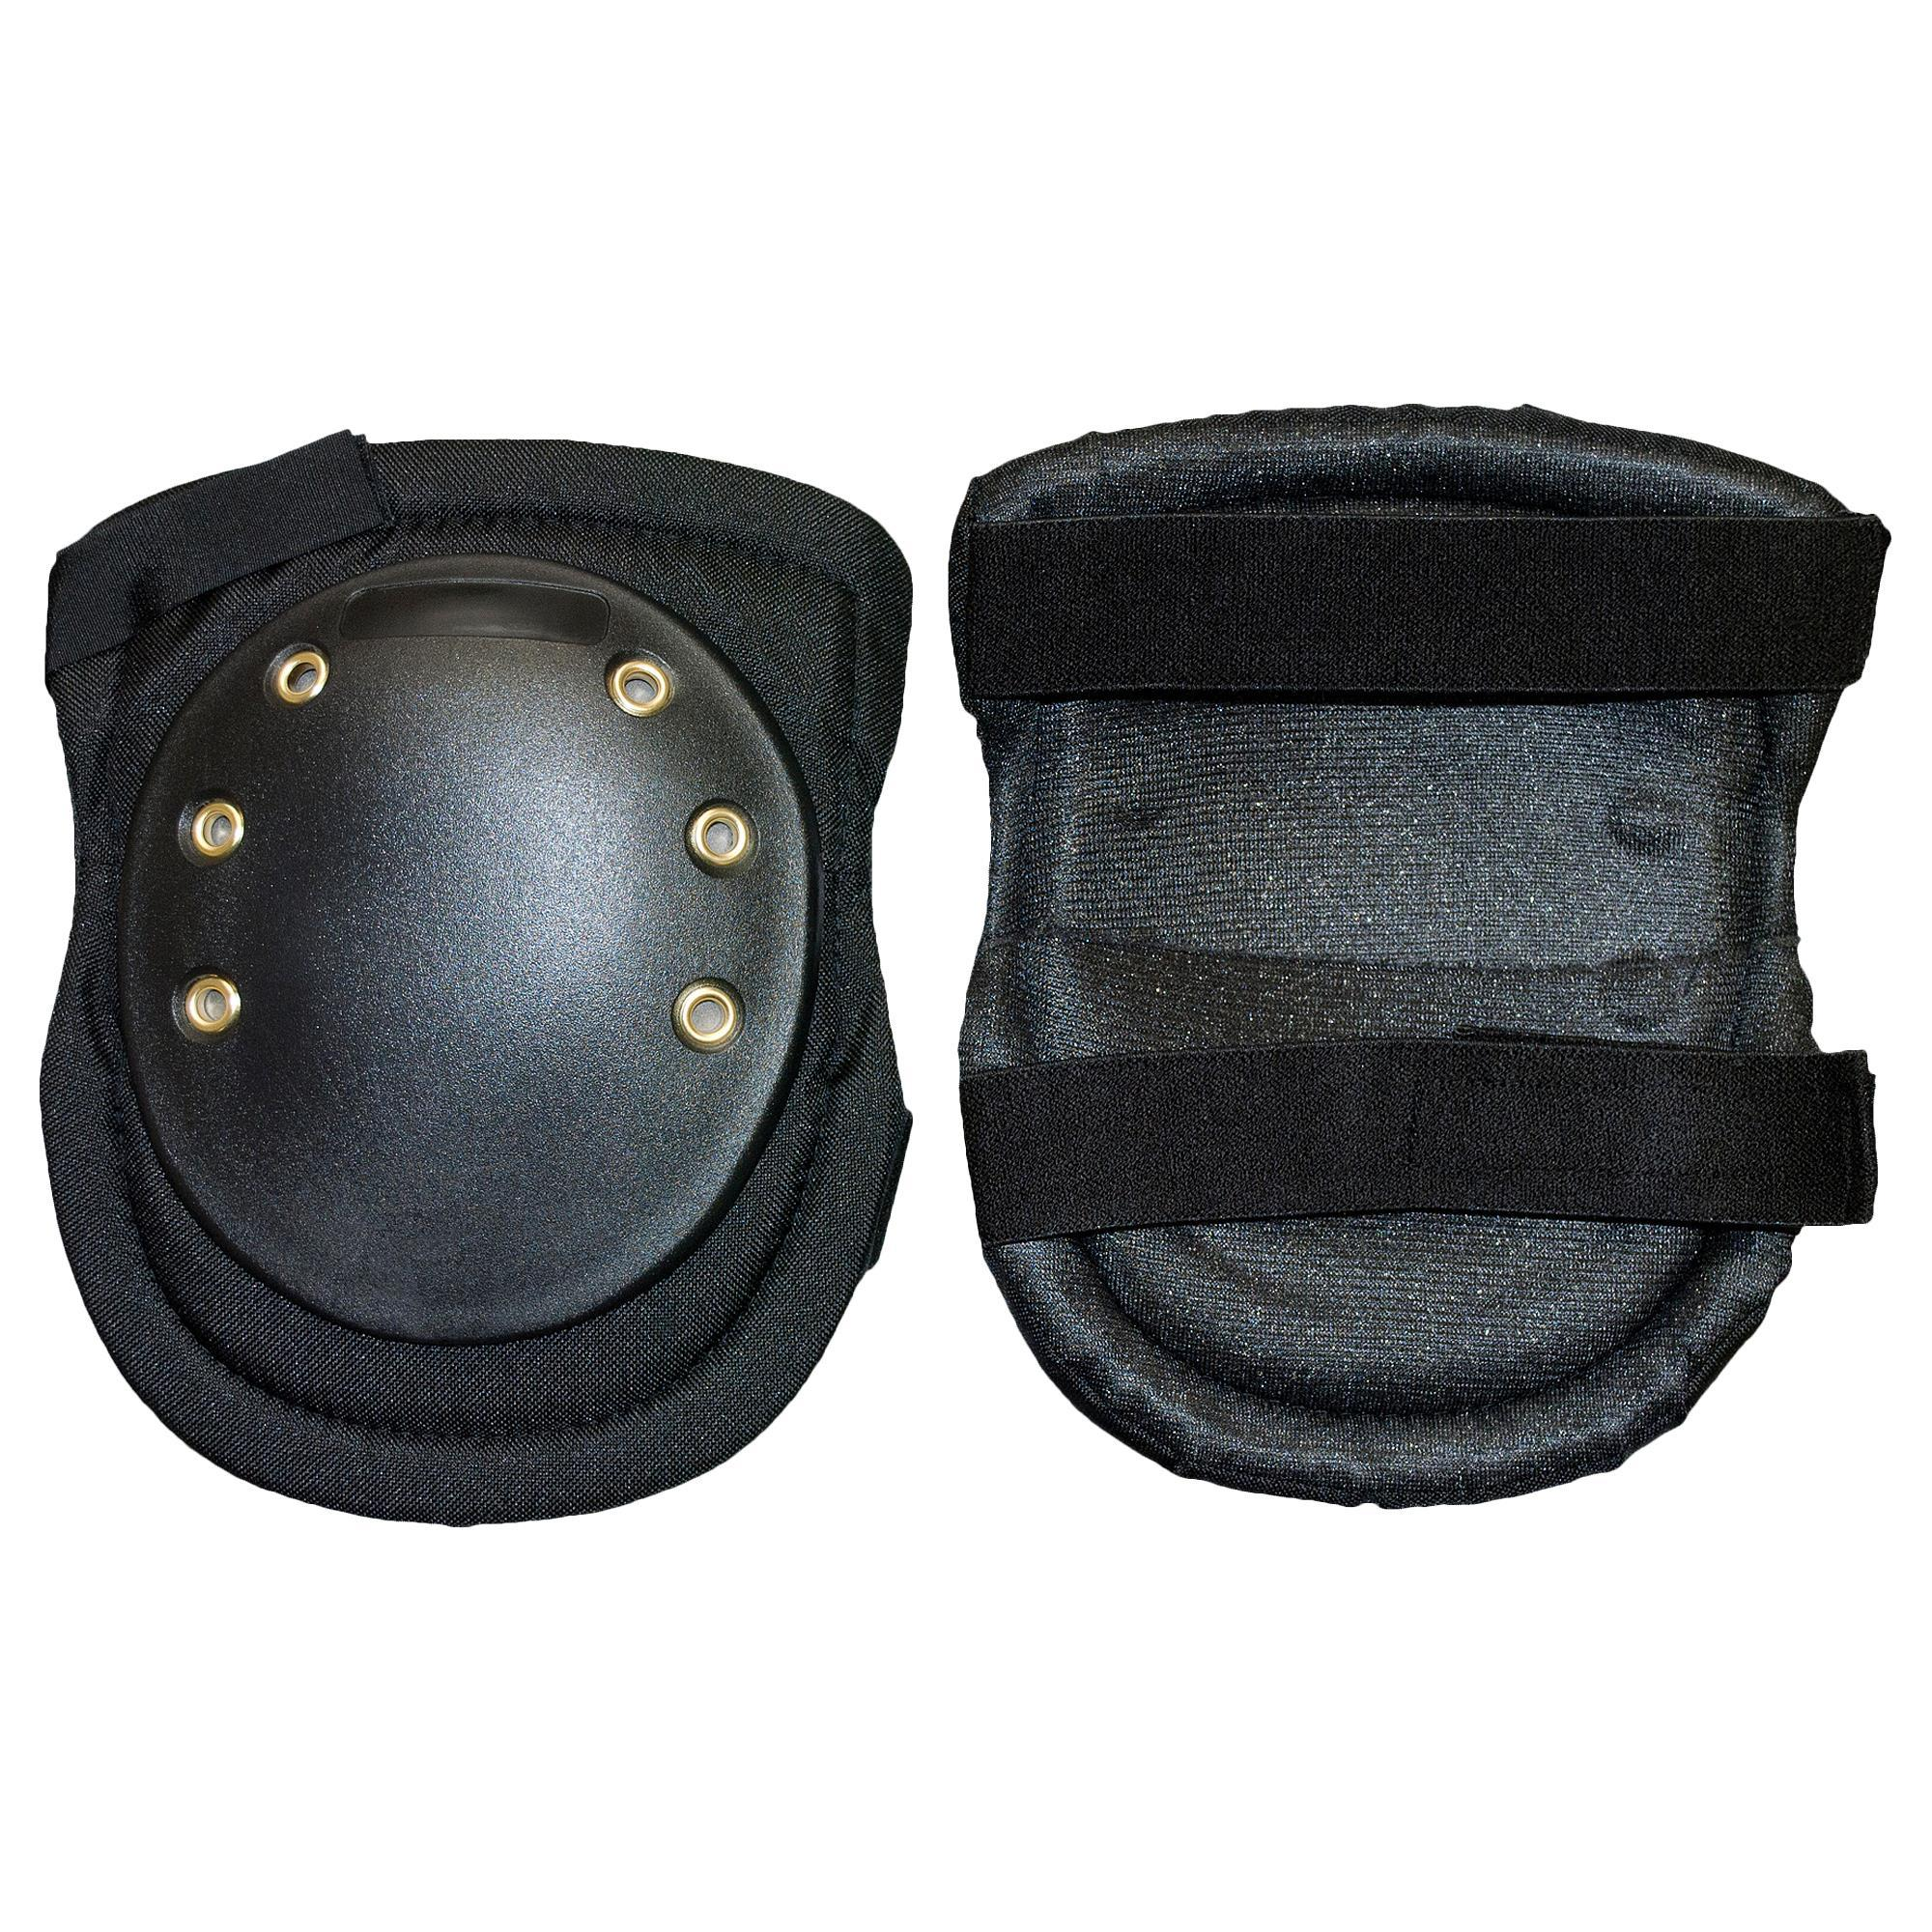 14758 Black Knee Pads with Hard Shell (includes 40 pair of knee pads)